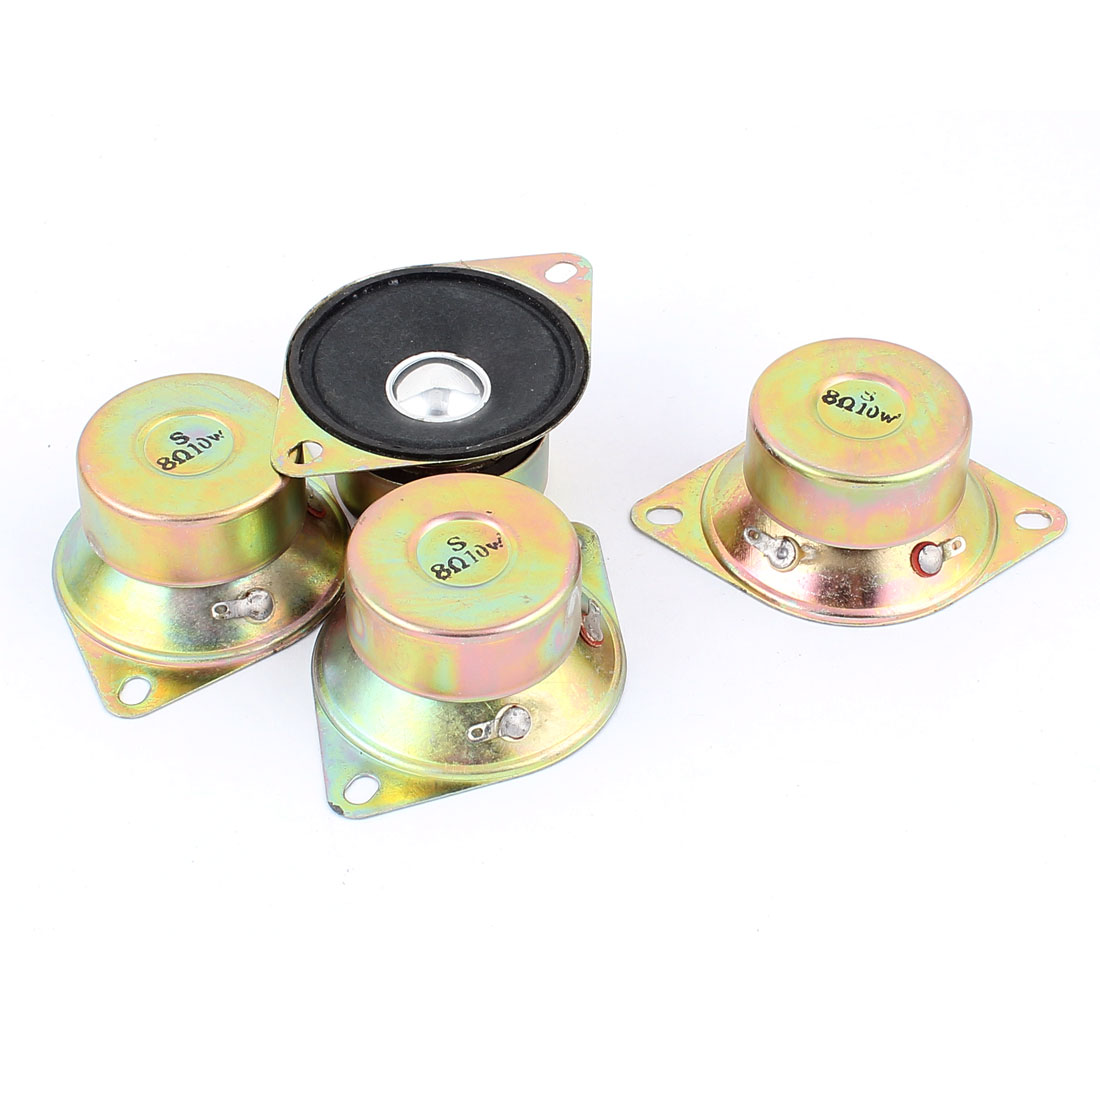 10W 50mm Diameter 8 Ohm Internal Mini Magnet Speaker Loudspeaker 4Pcs